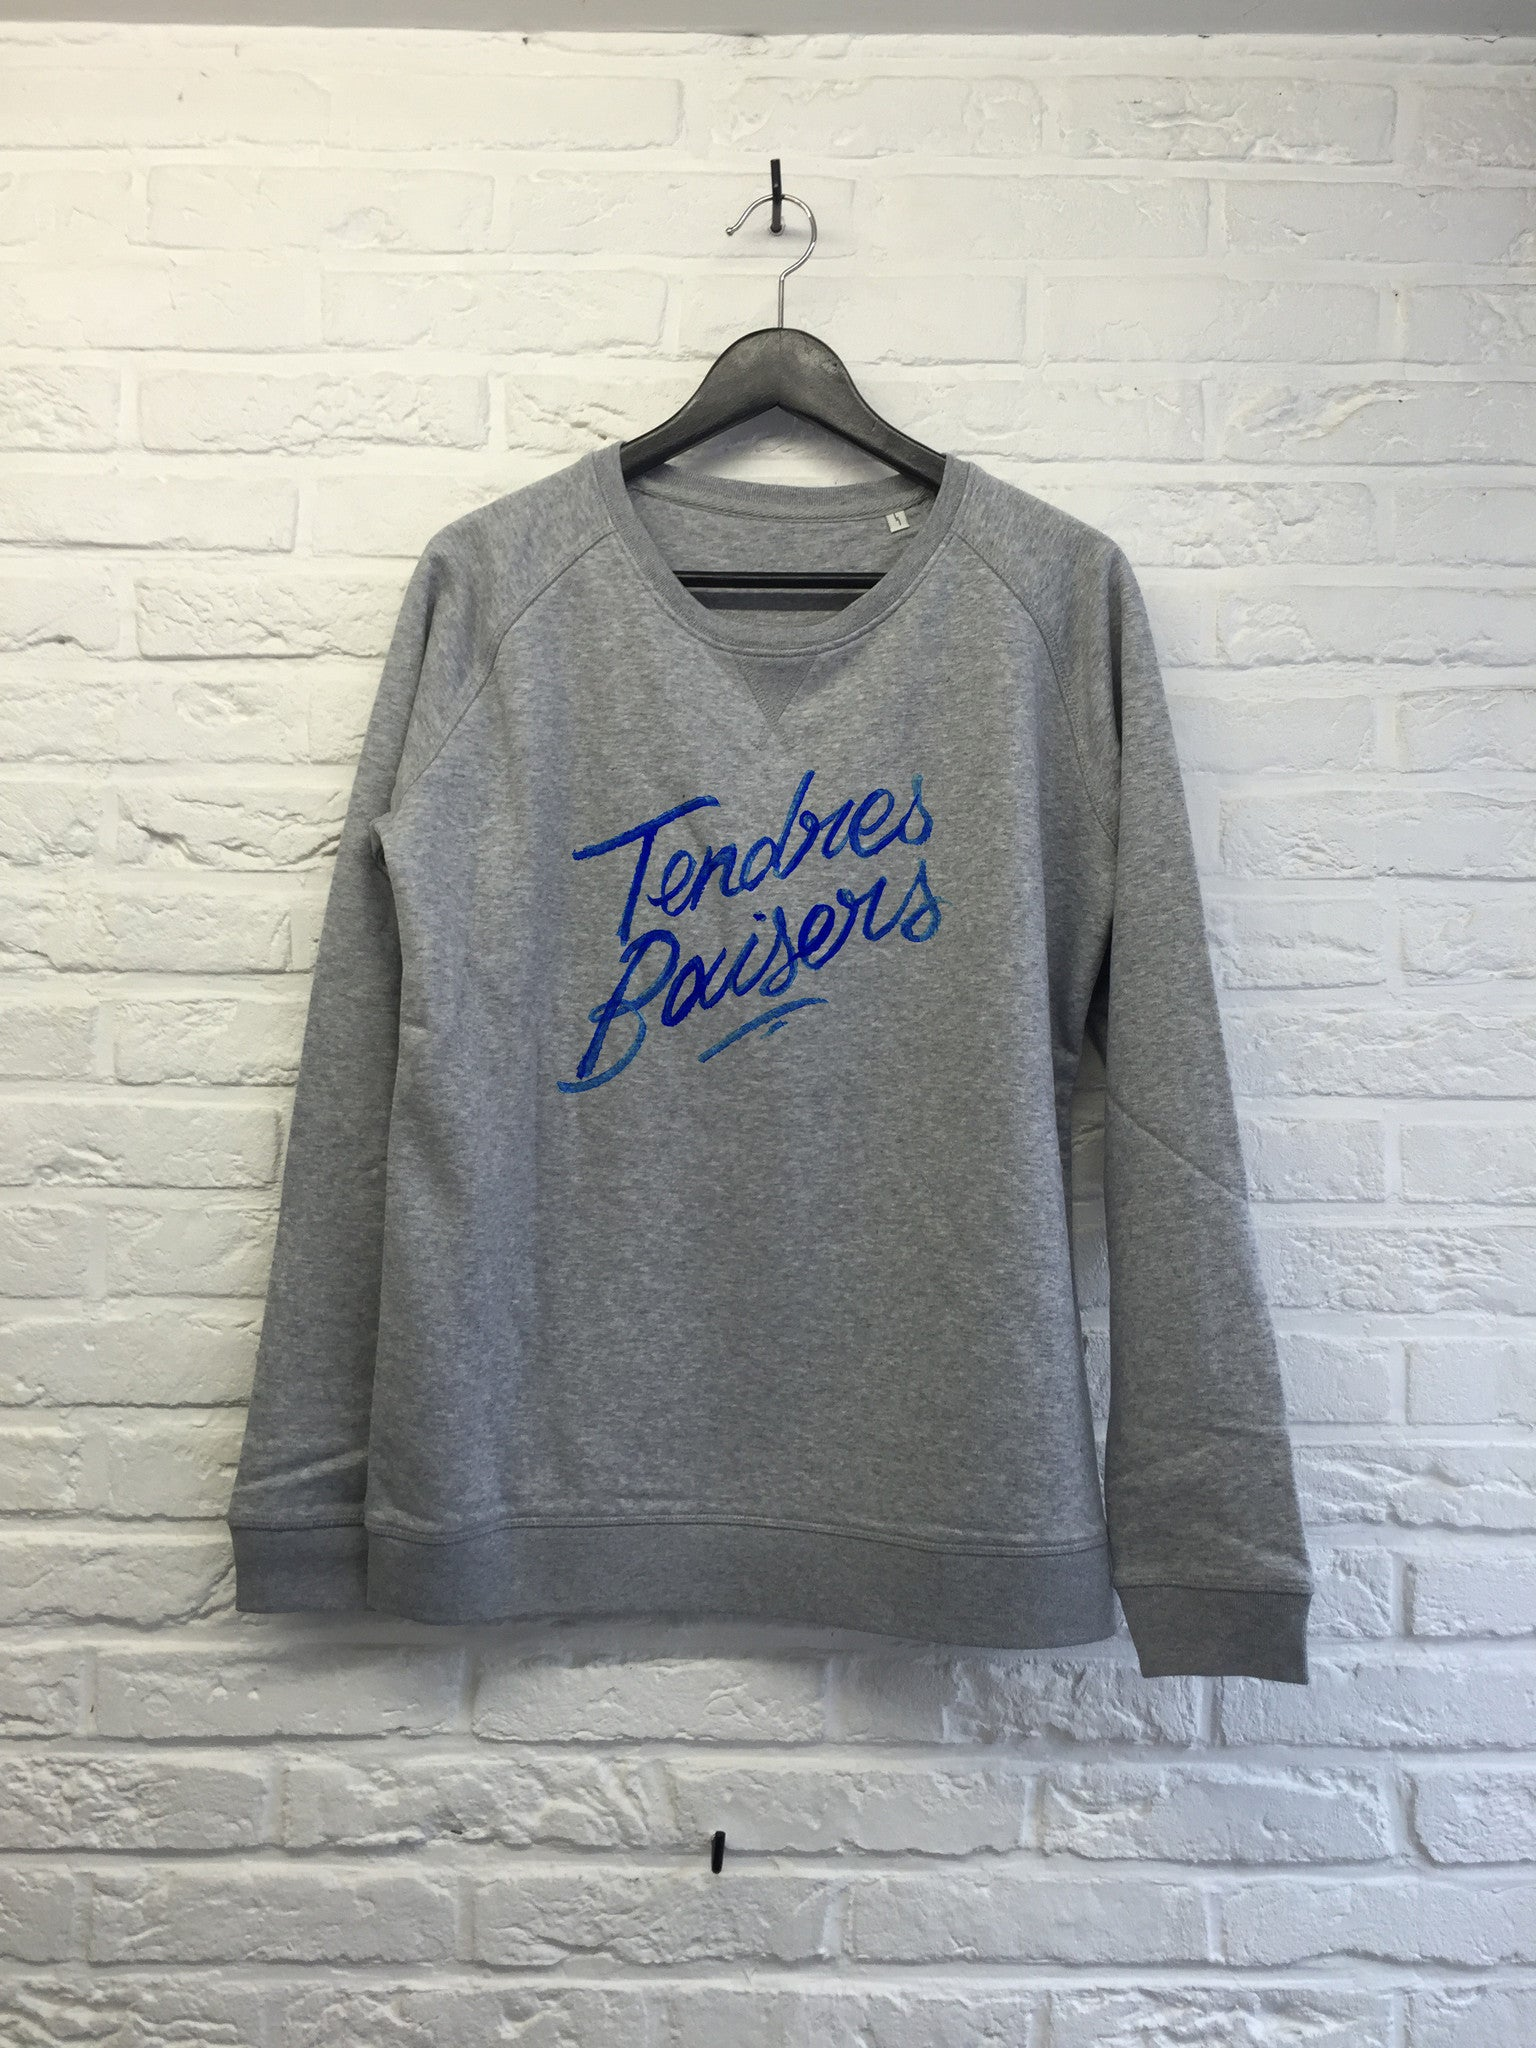 TH Gallery - Tendres baisers - Sweat - Femme-Sweat shirts-Atelier Amelot